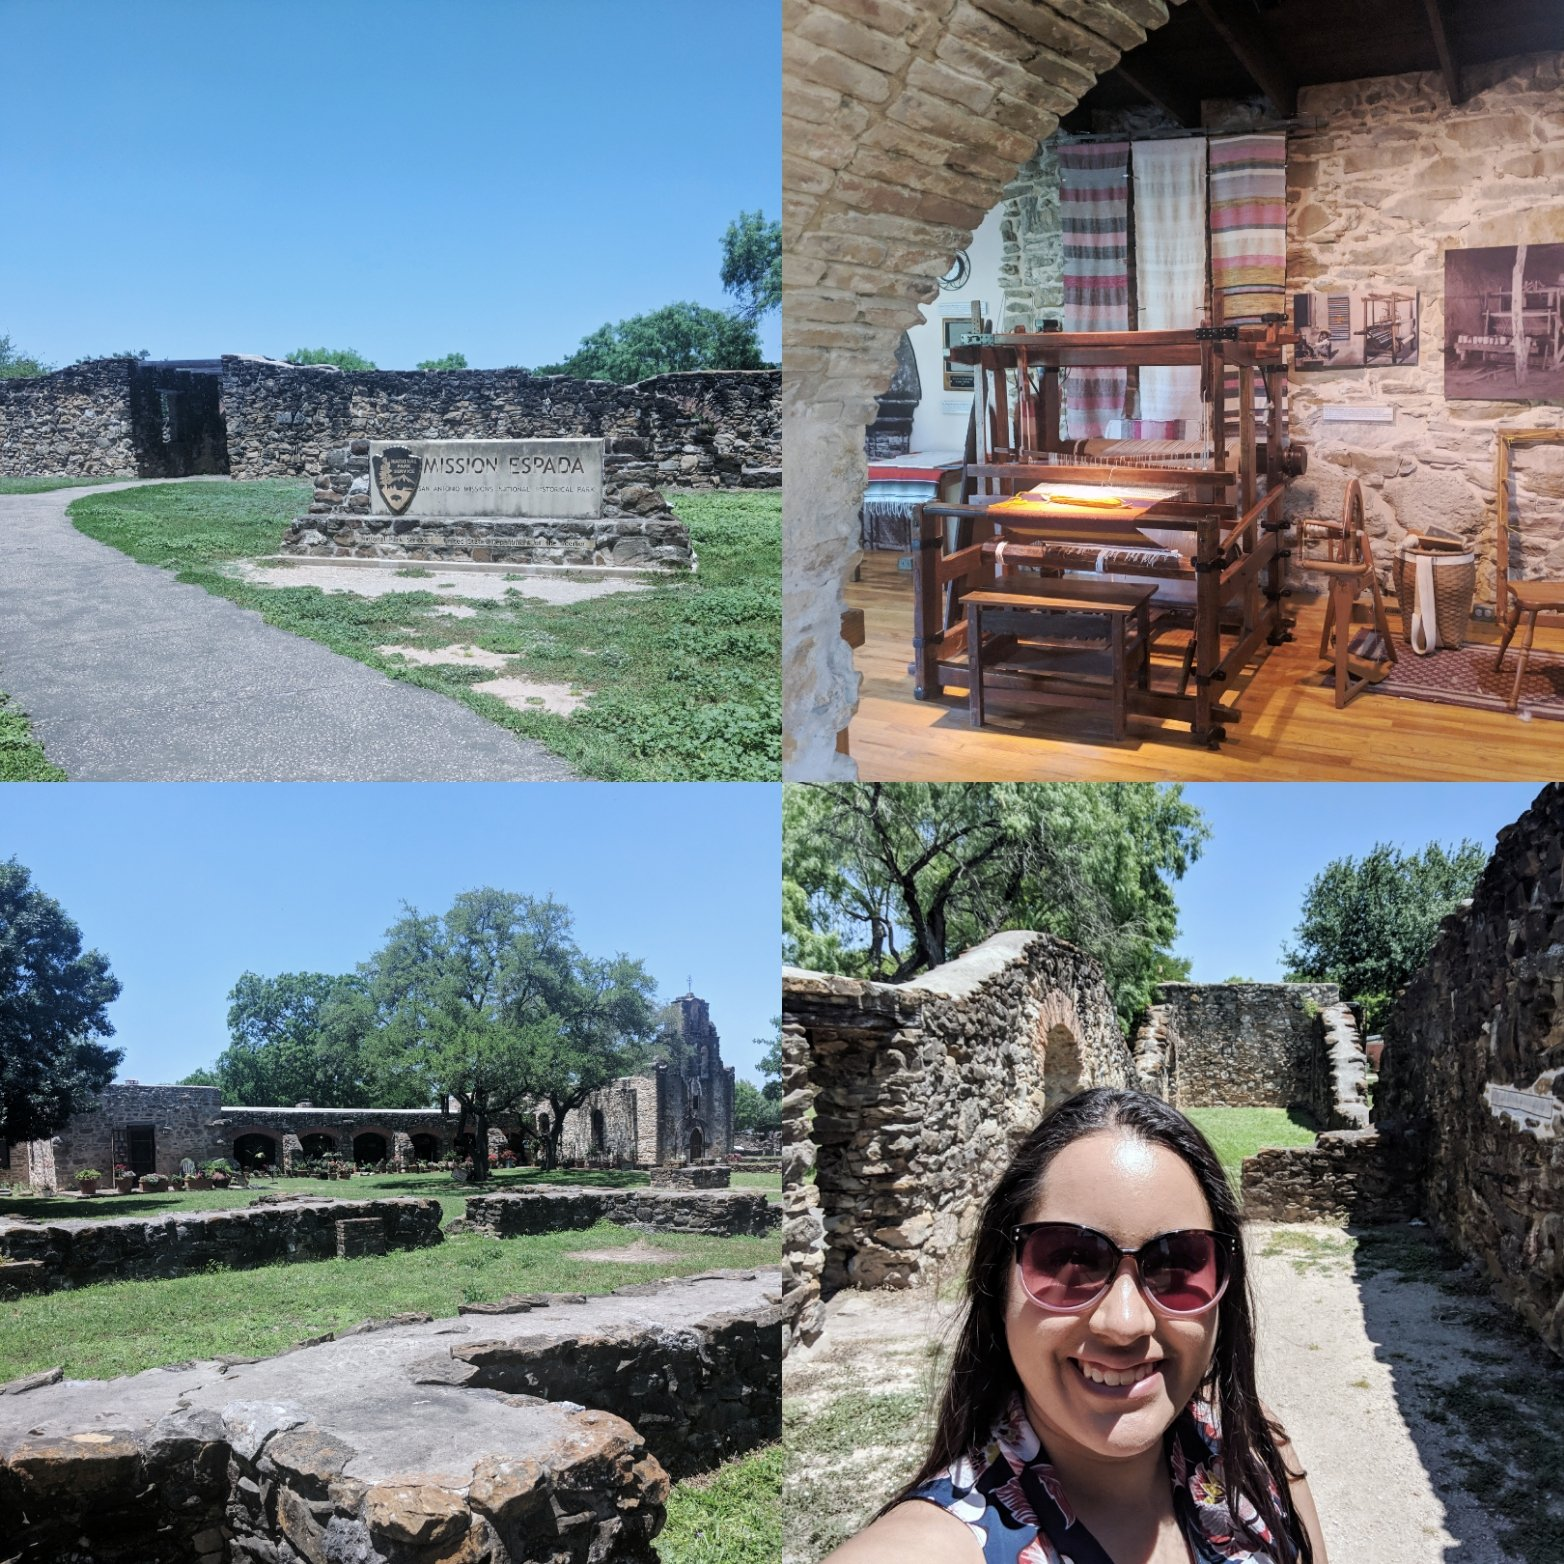 san antonio collage mission espada